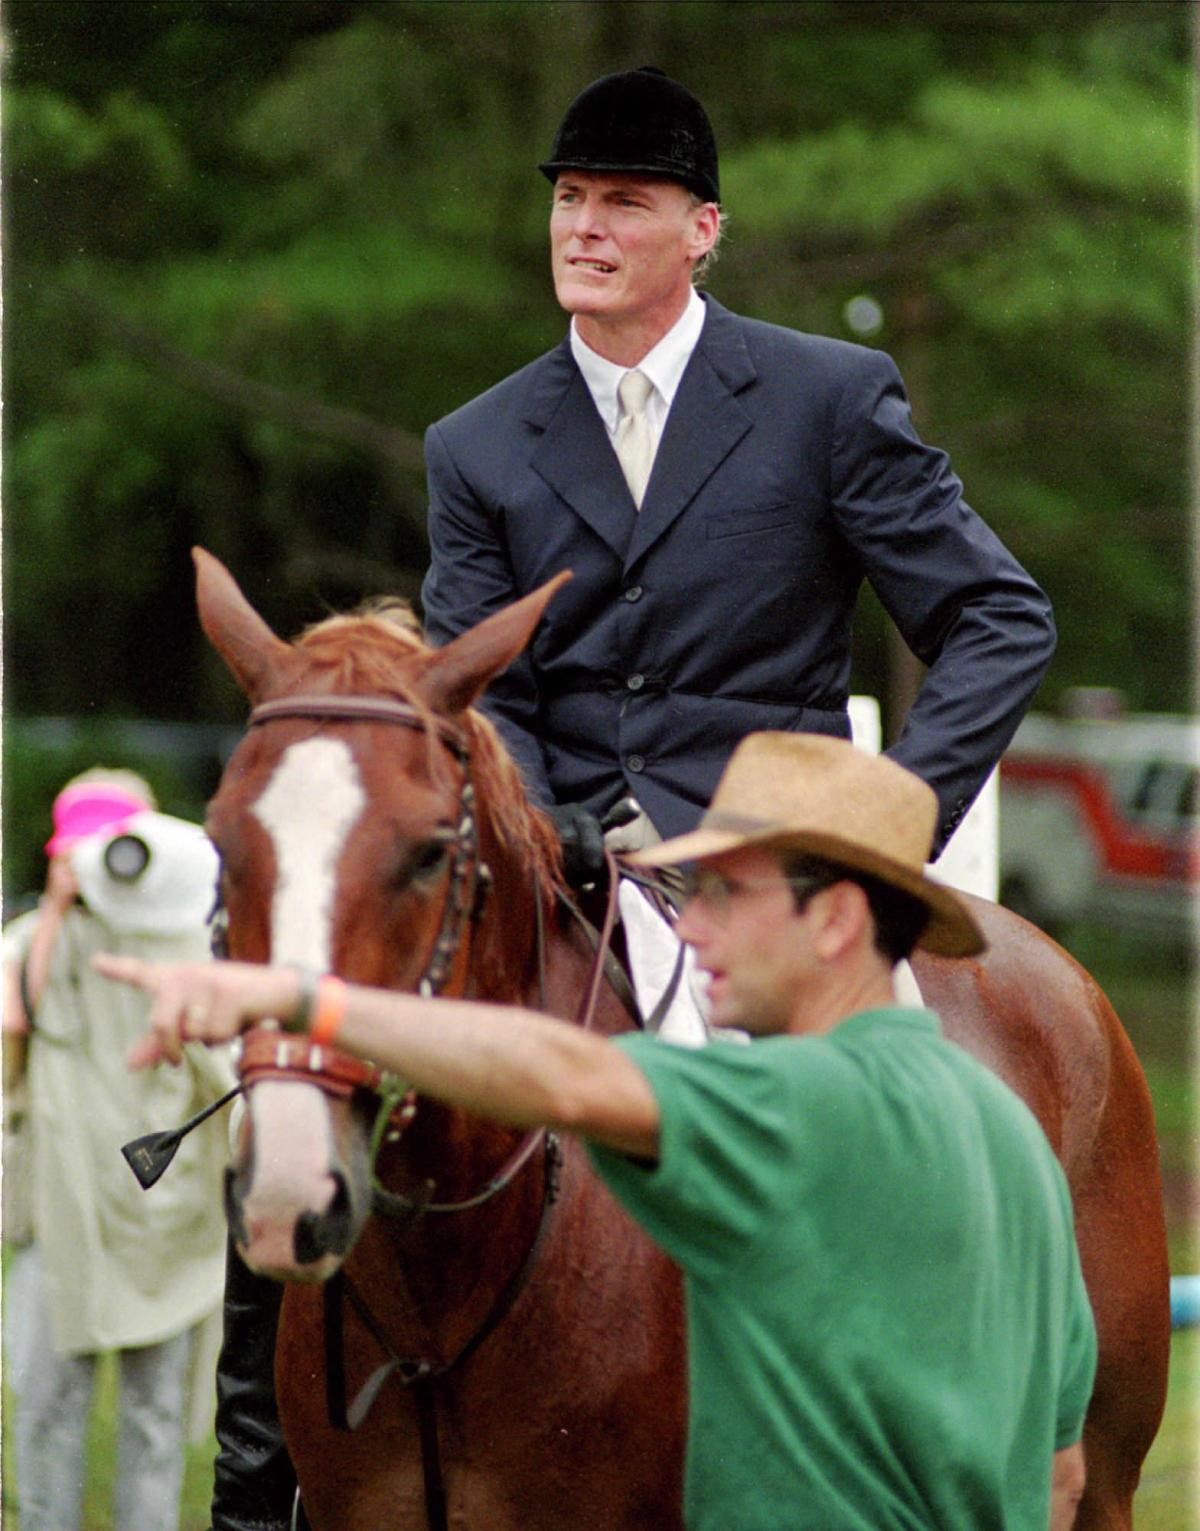 In Memory of Christopher Reeve (1952 -2004) – Actor Paralyzed in a Riding Accident